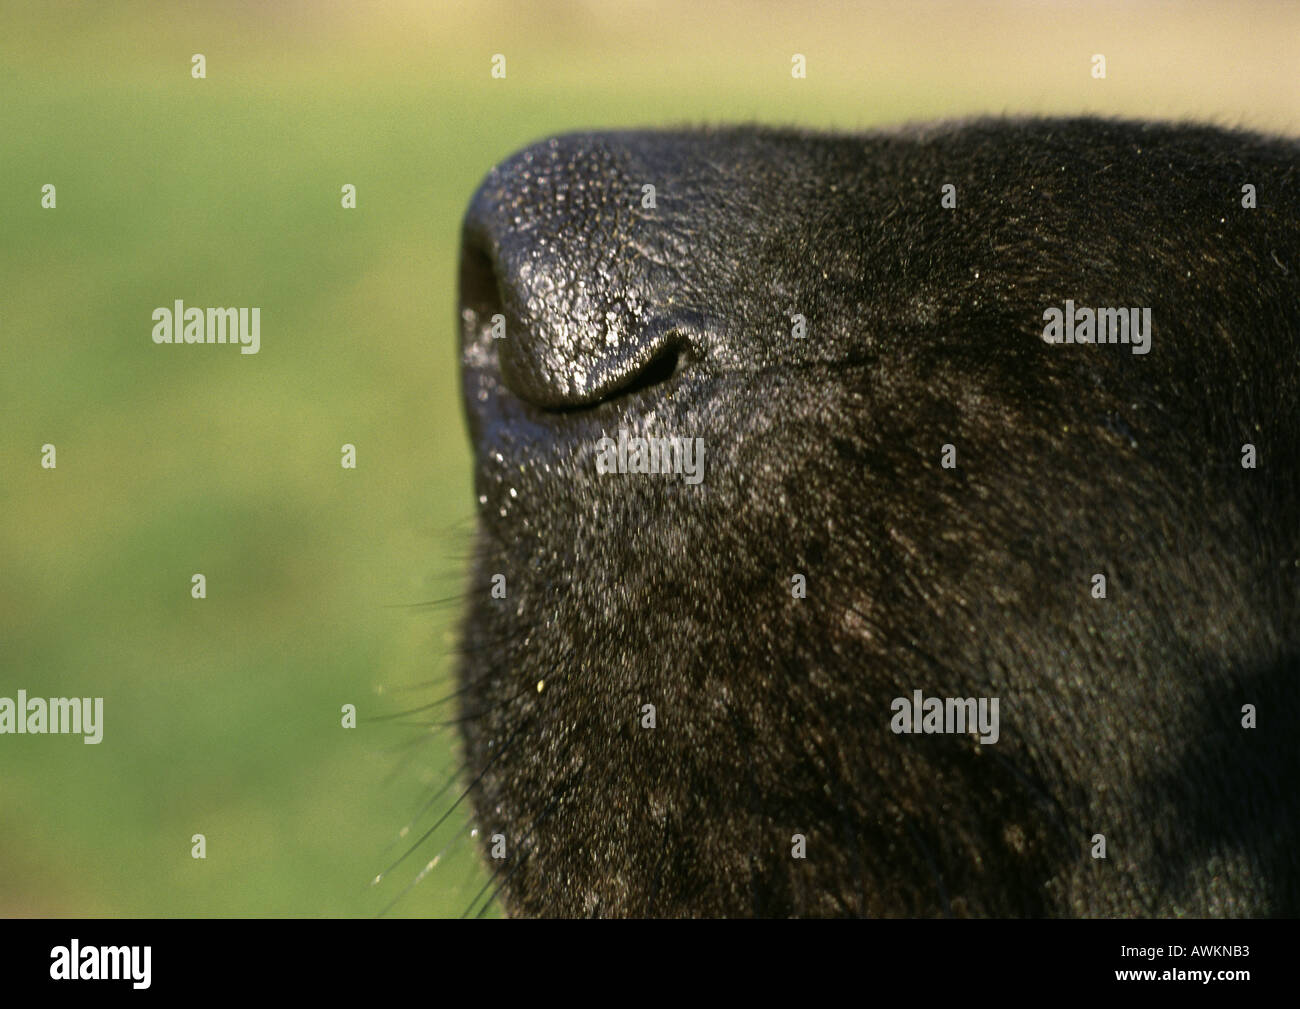 Black dog's nose side view, close-up - Stock Image